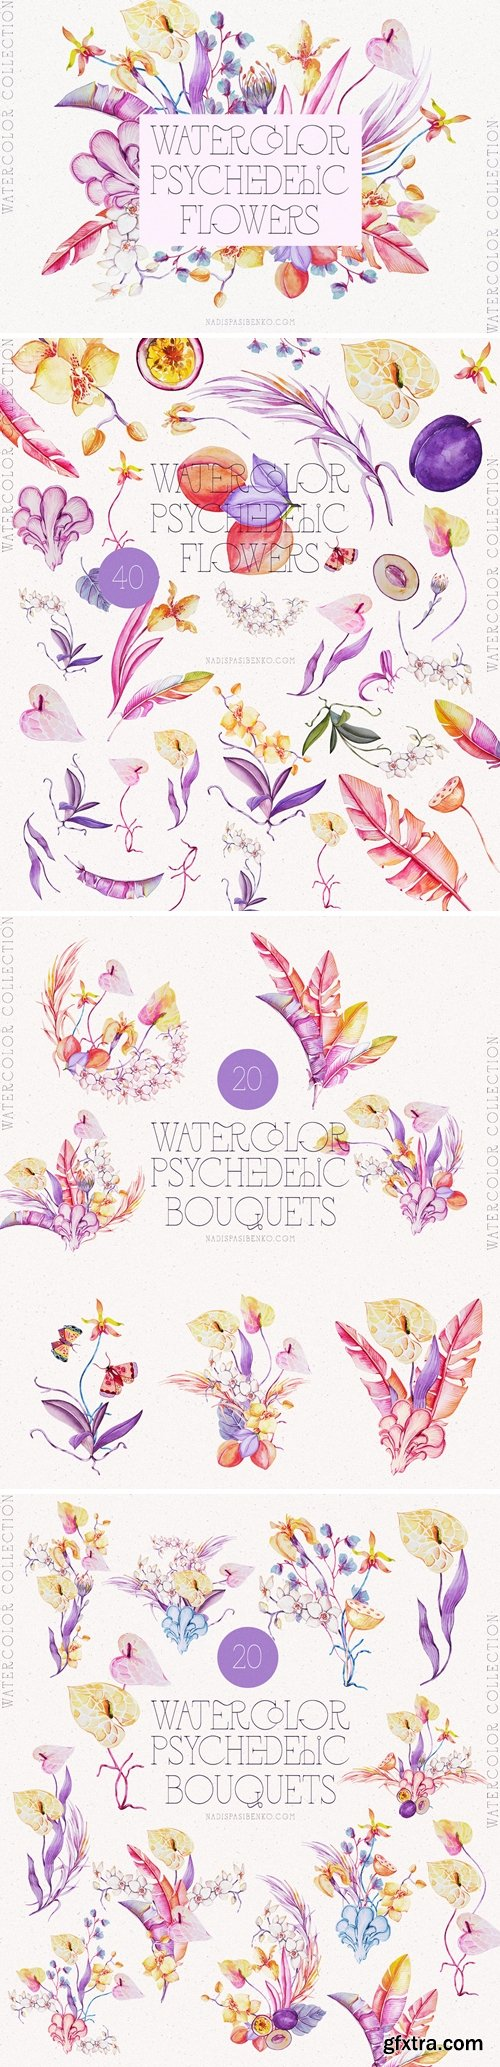 Watercolor Psychedelic Flowers